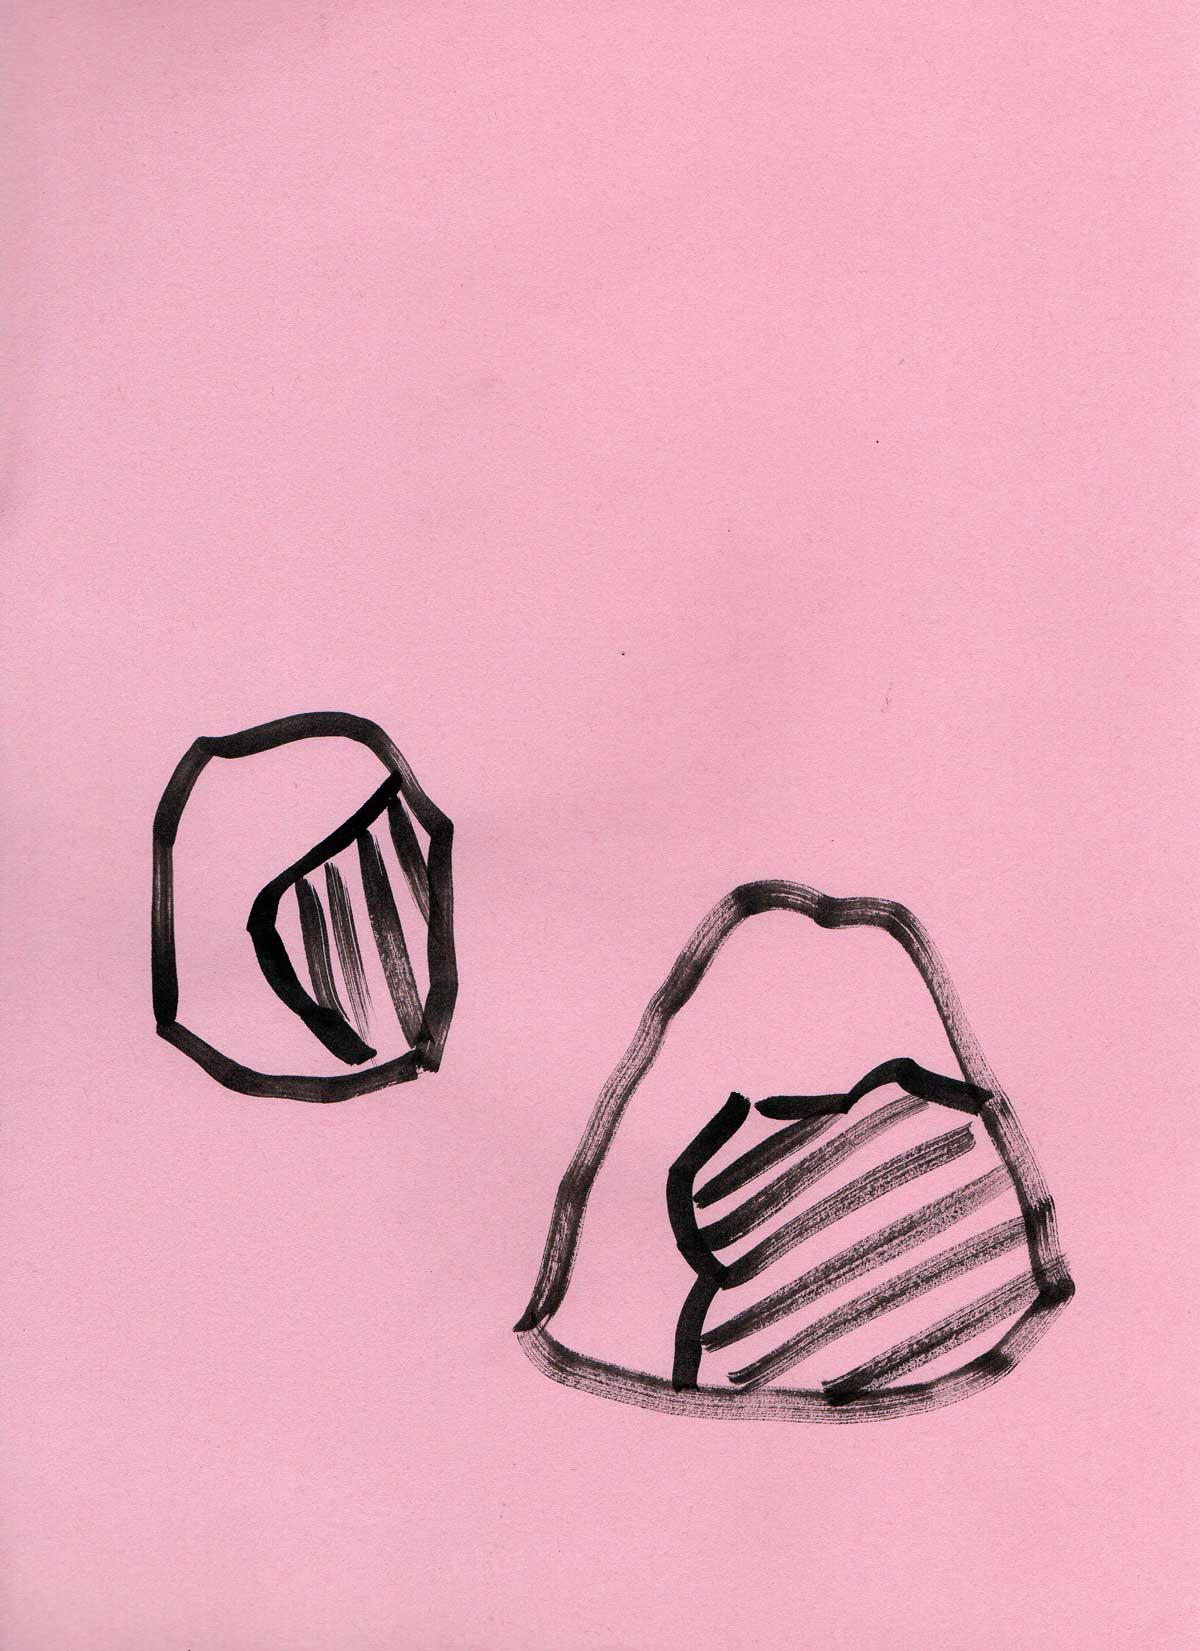 Jo Willoughby Pink Drawing 2